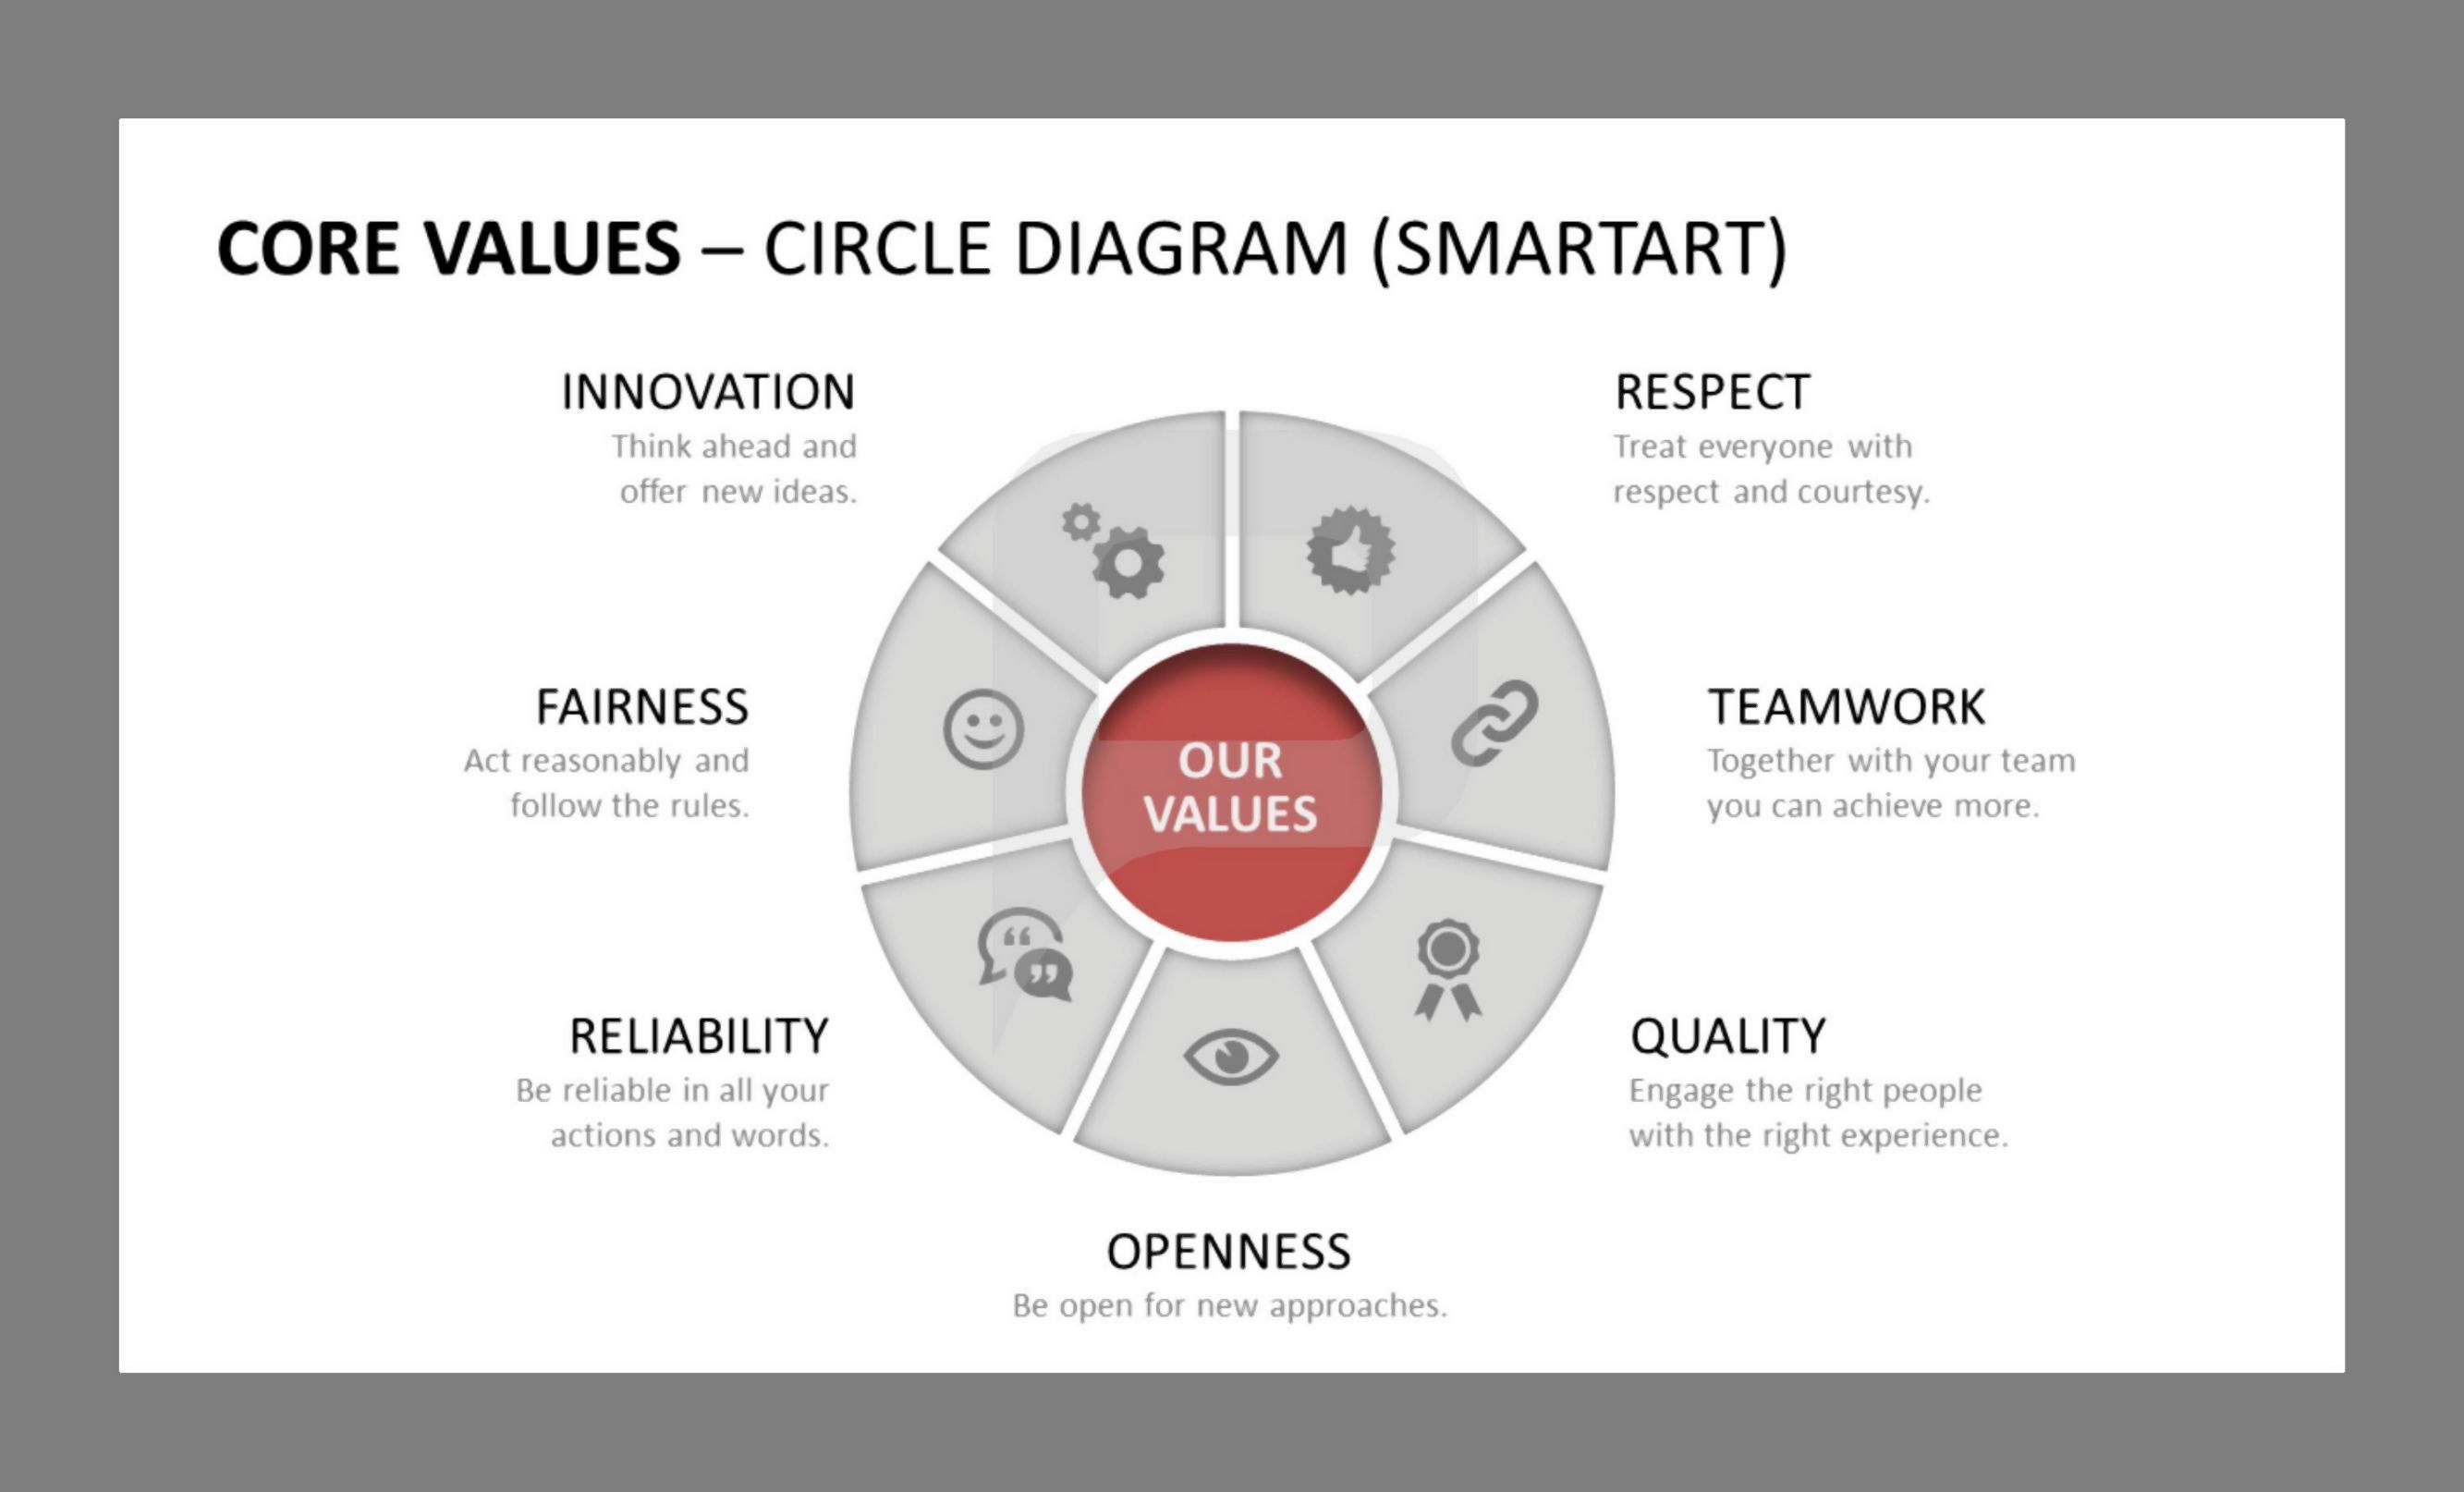 Present your company's core values in an organized way by